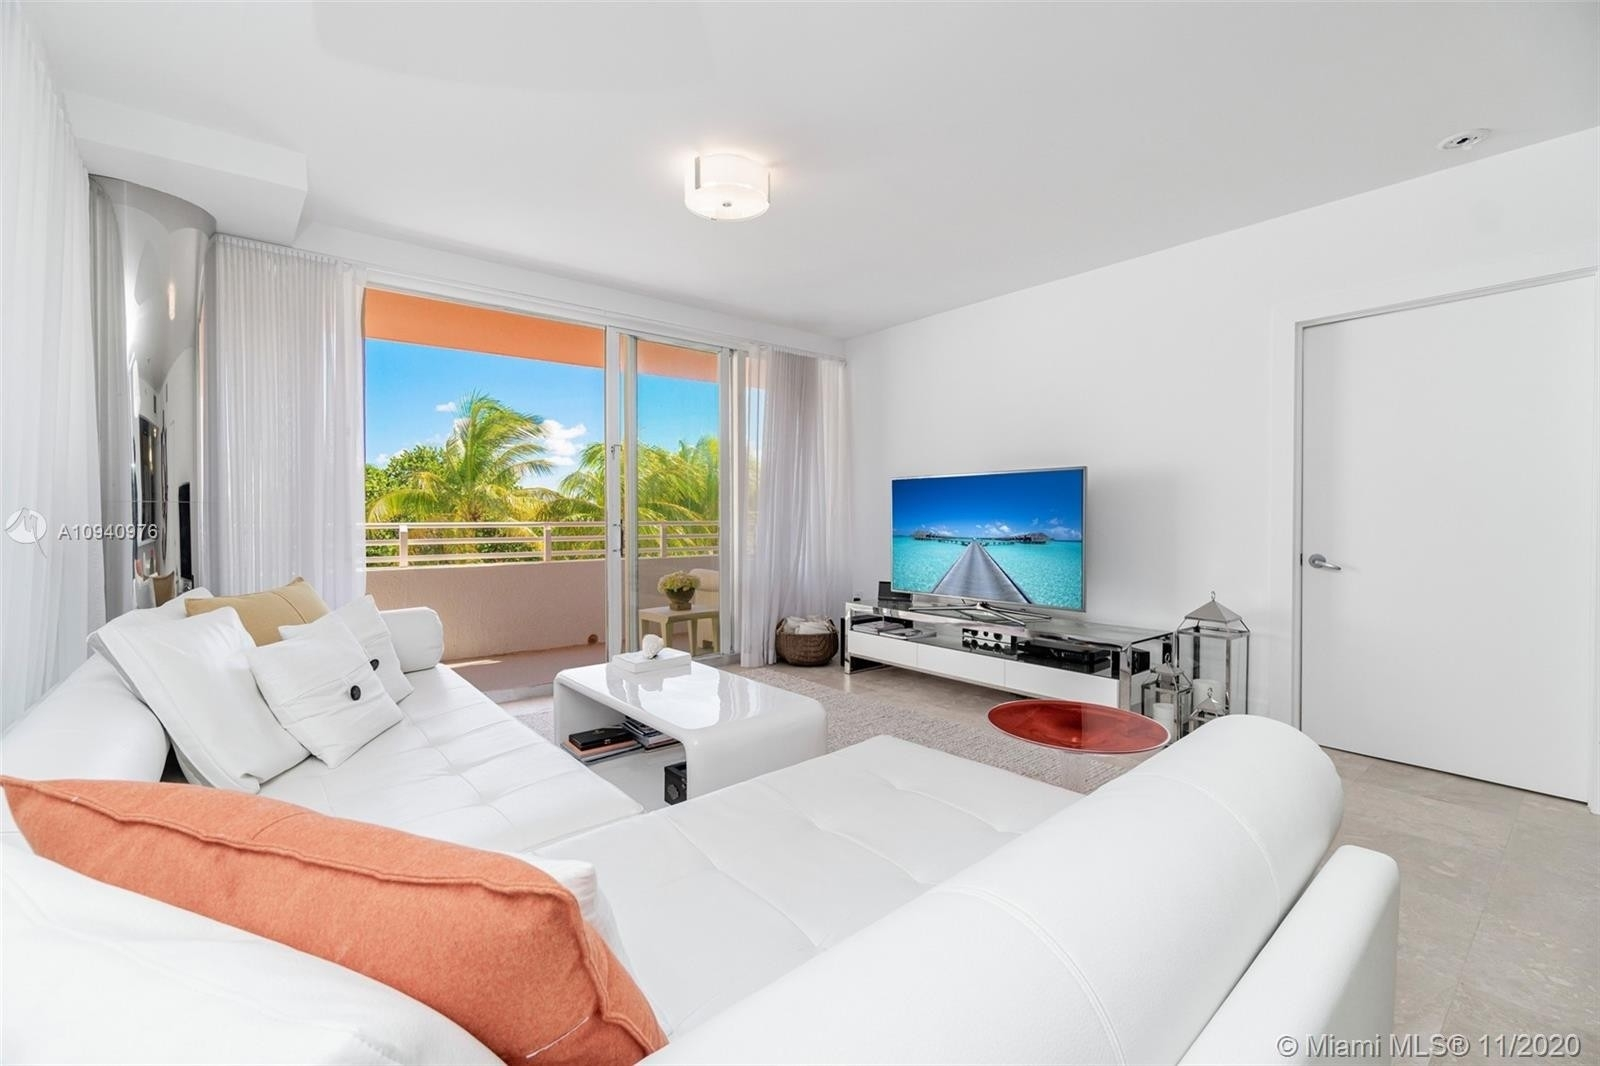 Property at 226 Ocean Dr , 3E SoFi, Miami Beach, FL 33139